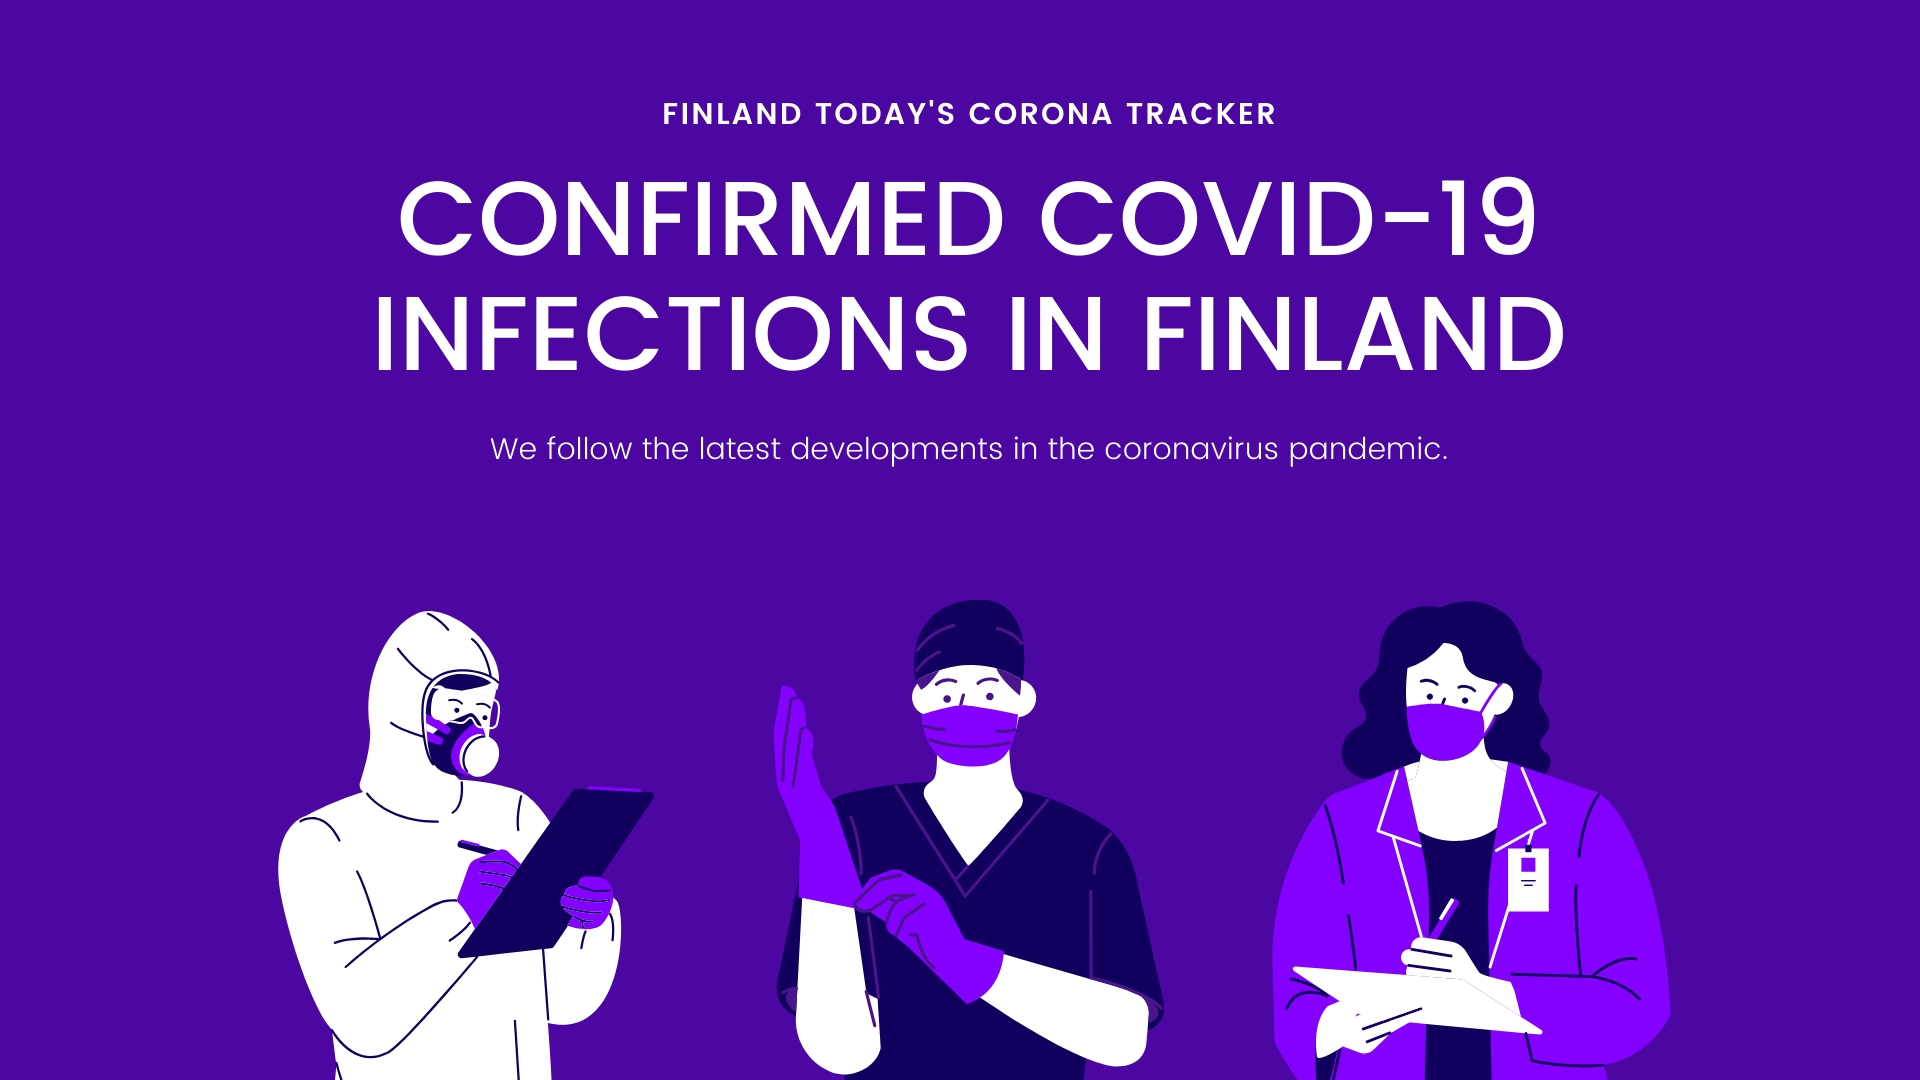 368 New Coronavirus Infections in Finland; 187 in Capital Region | Finland Today | News in English | finlandtoday.fi